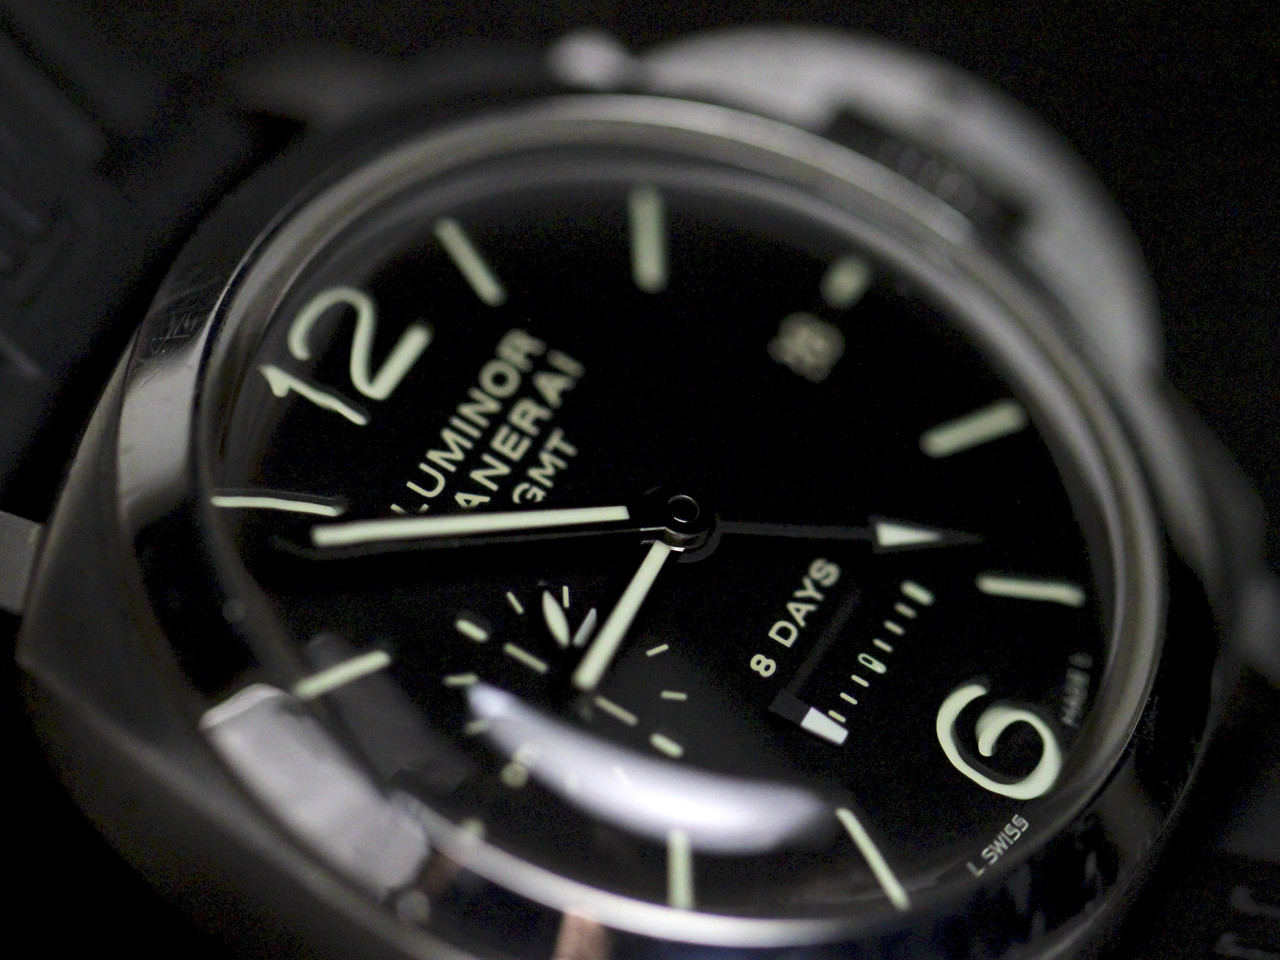 Dial Detail - Pre-Owned Panerai Watch - Luminor 1950 8 Days GMT Acciaio PAM00233 - for sale online and instore Legend of Time - Chicago Watch Center